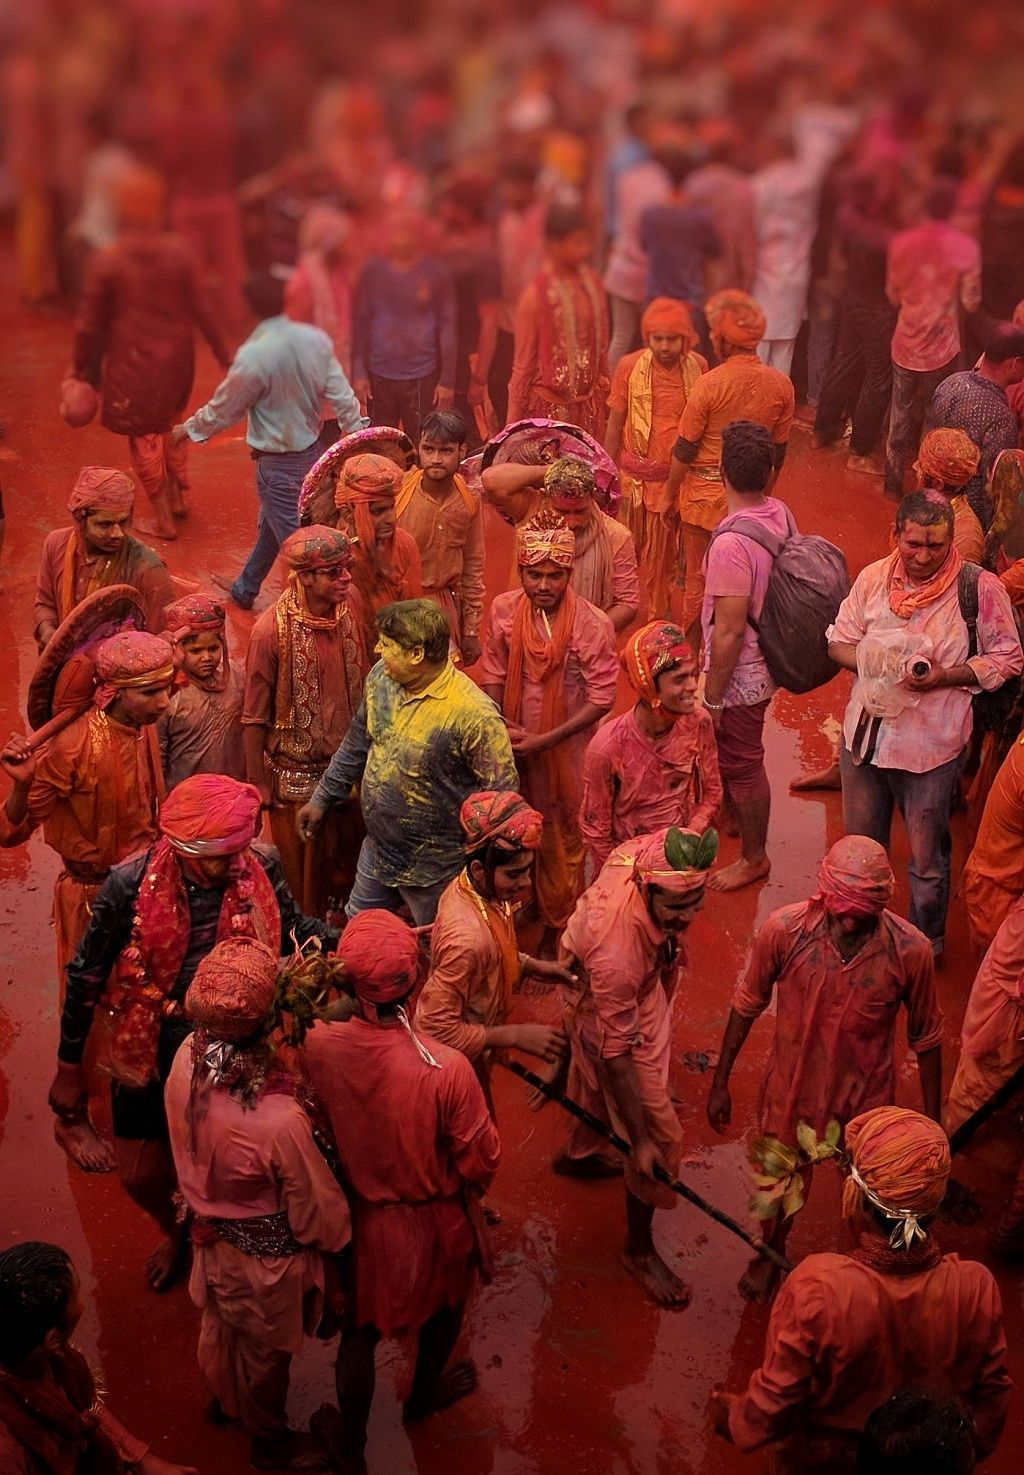 Photo by Priyanka Desai #Holi Photo contest. To participate in this contest upload #Holi2017 photos here--> http://buff.ly/2mmNXwT